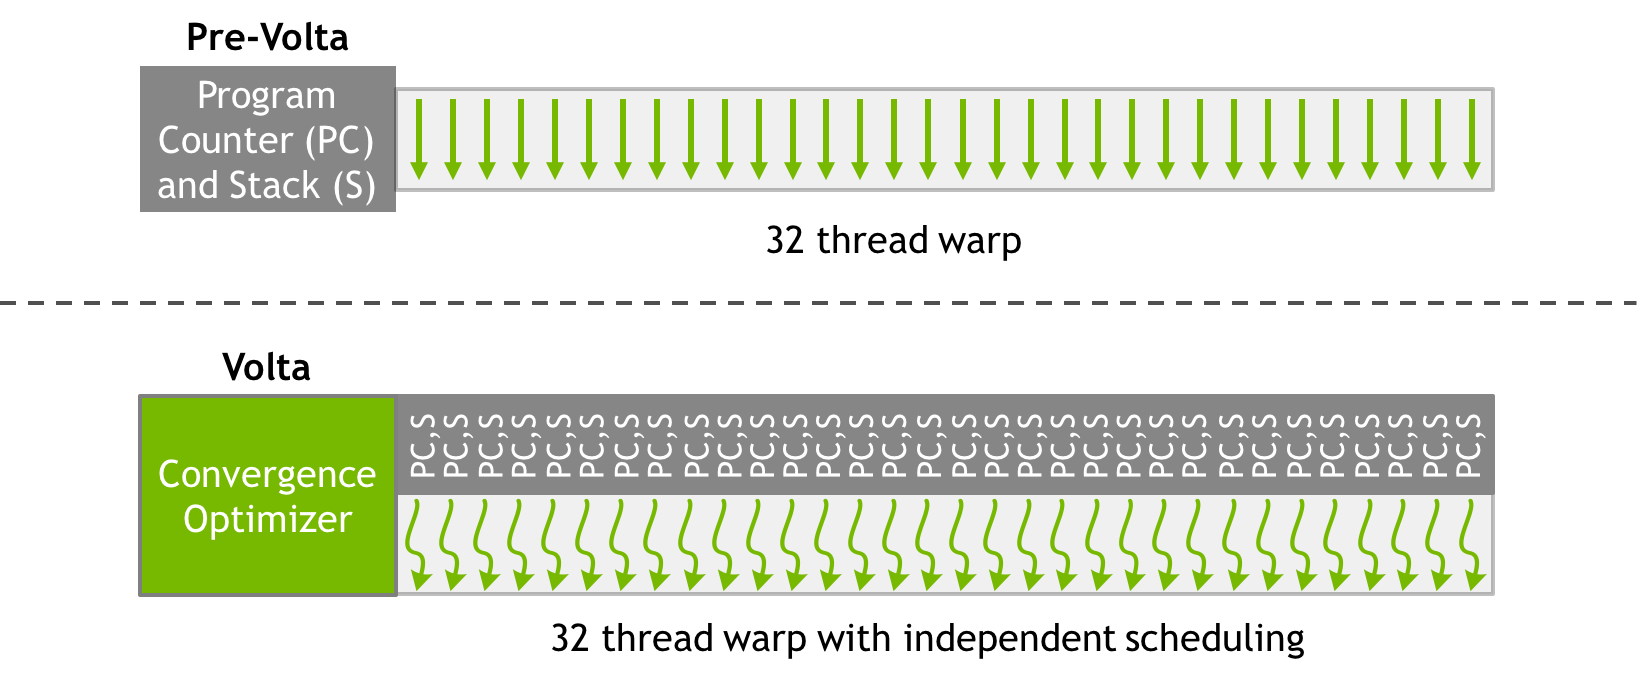 Figure 11: Volta (bottom) independent thread scheduling architecture block diagram compared to Pascal and earlier architectures (top). Volta maintains per-thread scheduling resources such as program counter (PC) and call stack (S), while earlier architectures maintained these resources per warp.